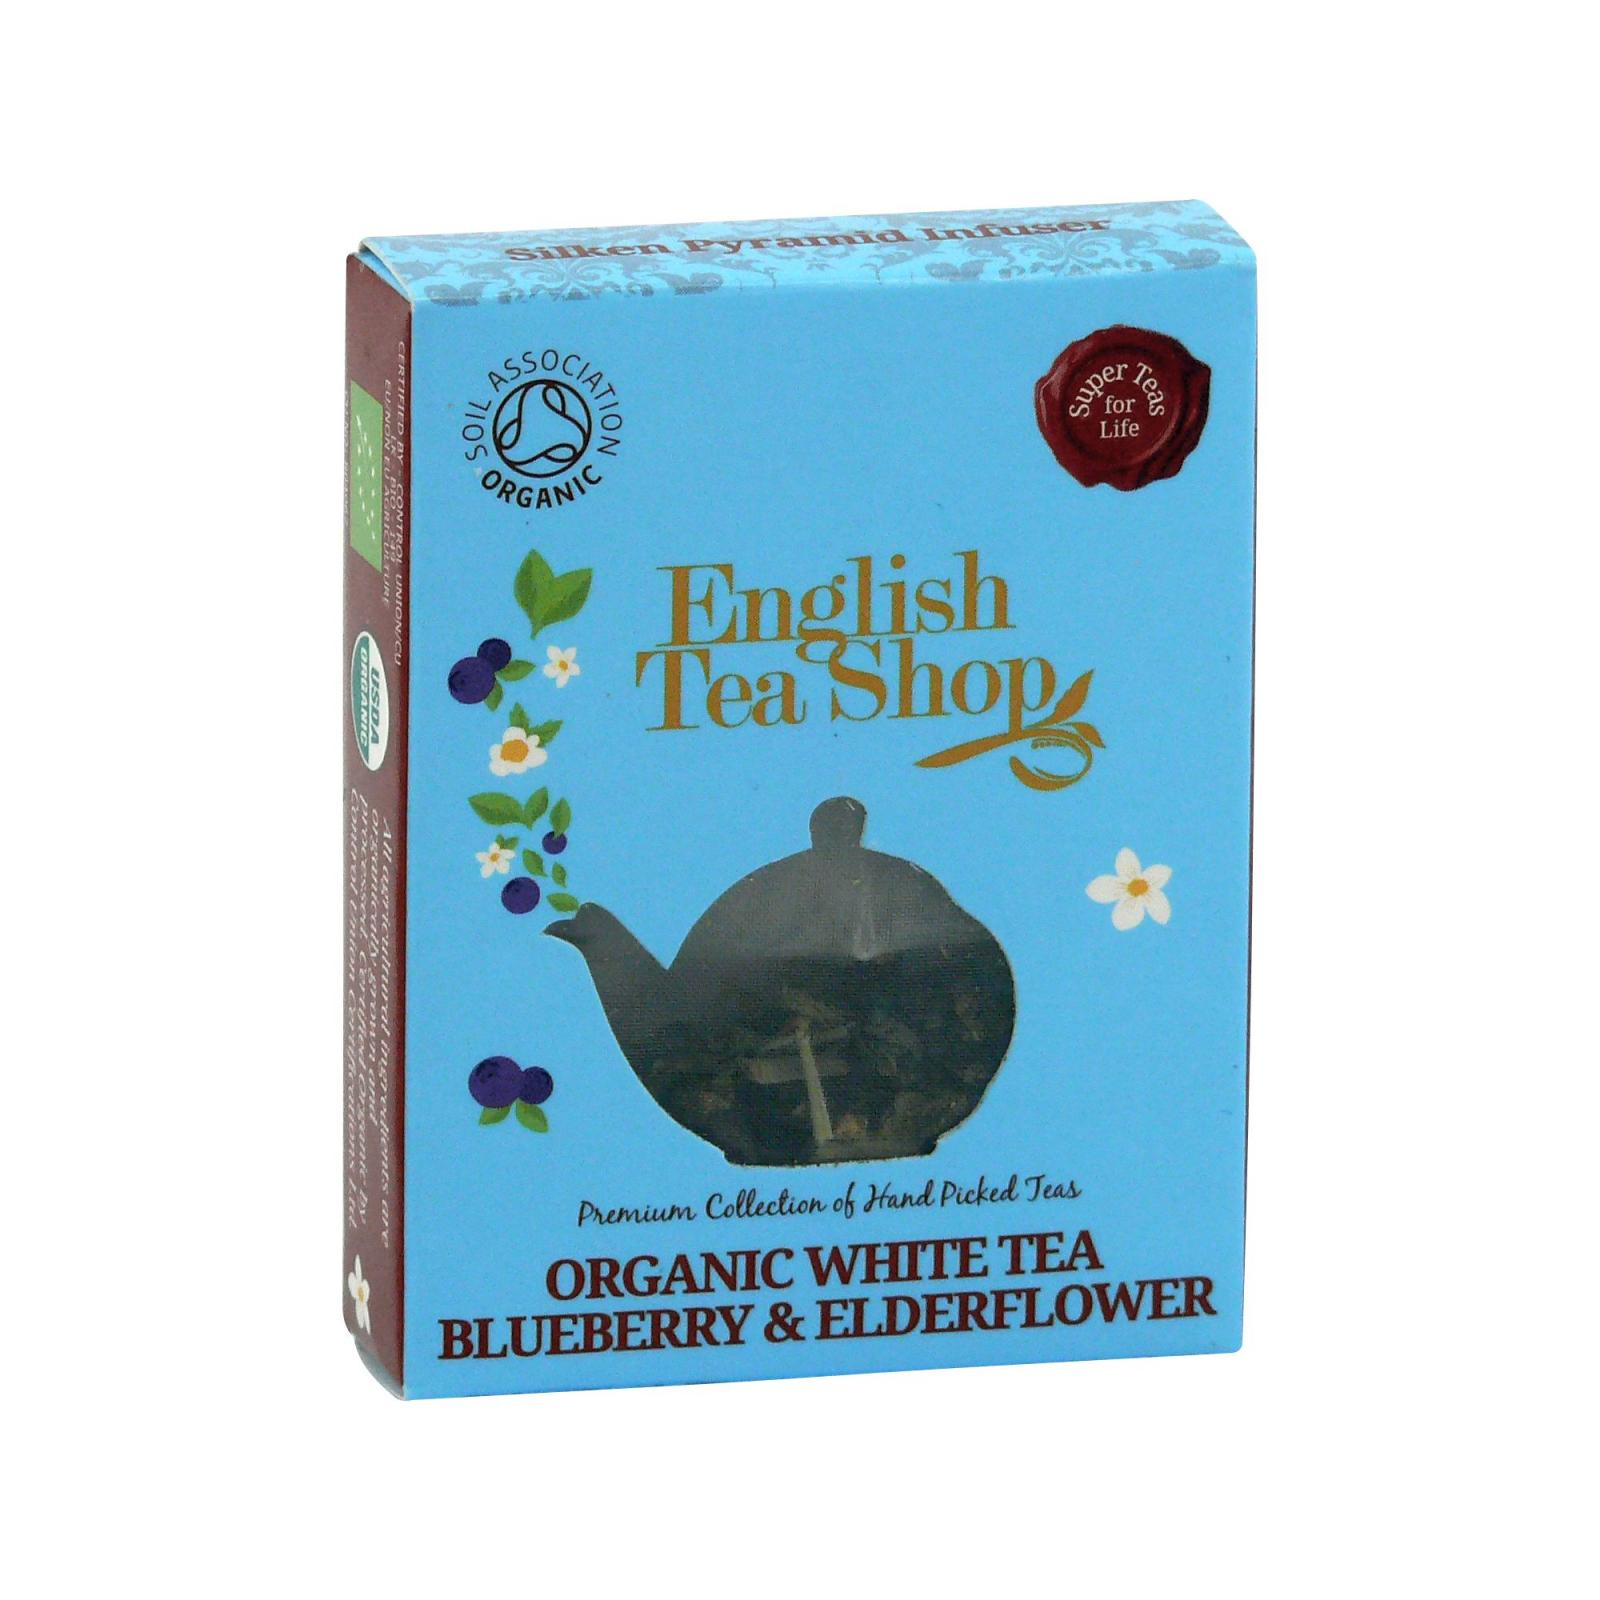 English Tea Shop Bílý čaj borůvka a bezový květ 1 ks, 9 g